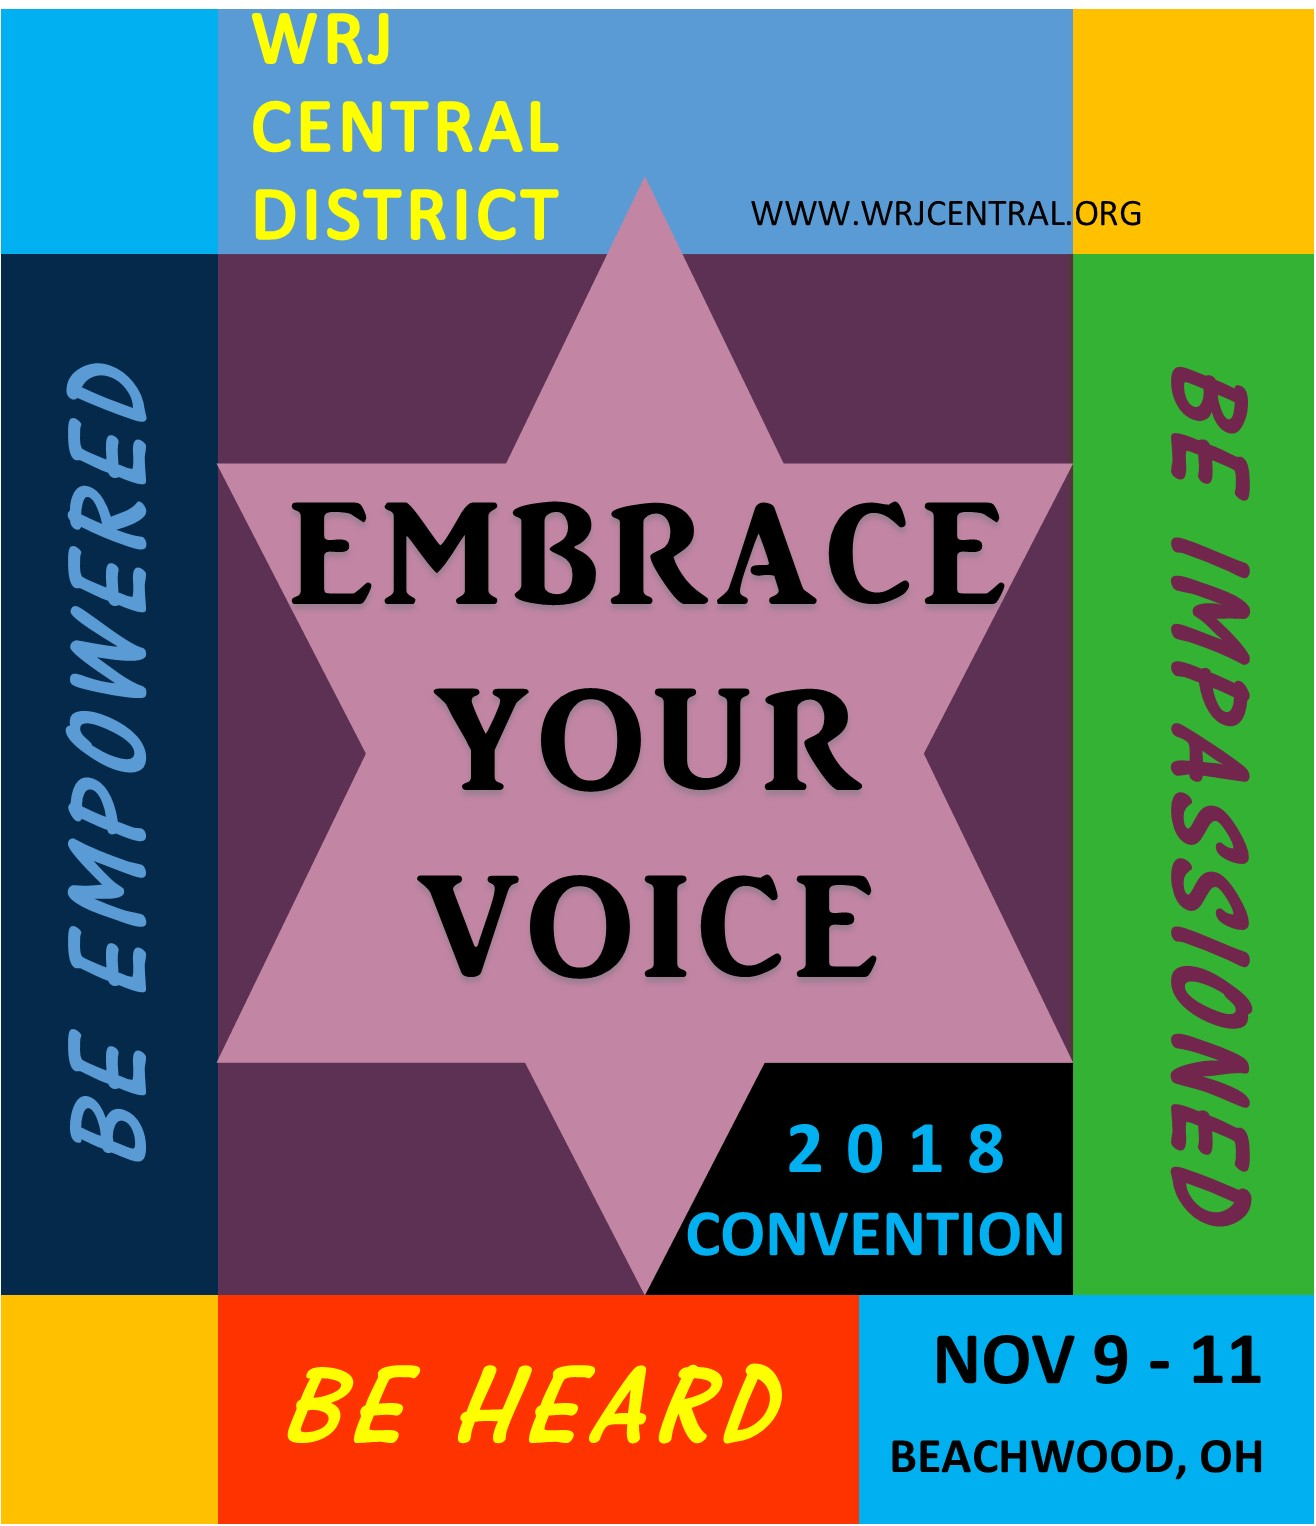 Plan to attend: 2018 Central District Convention